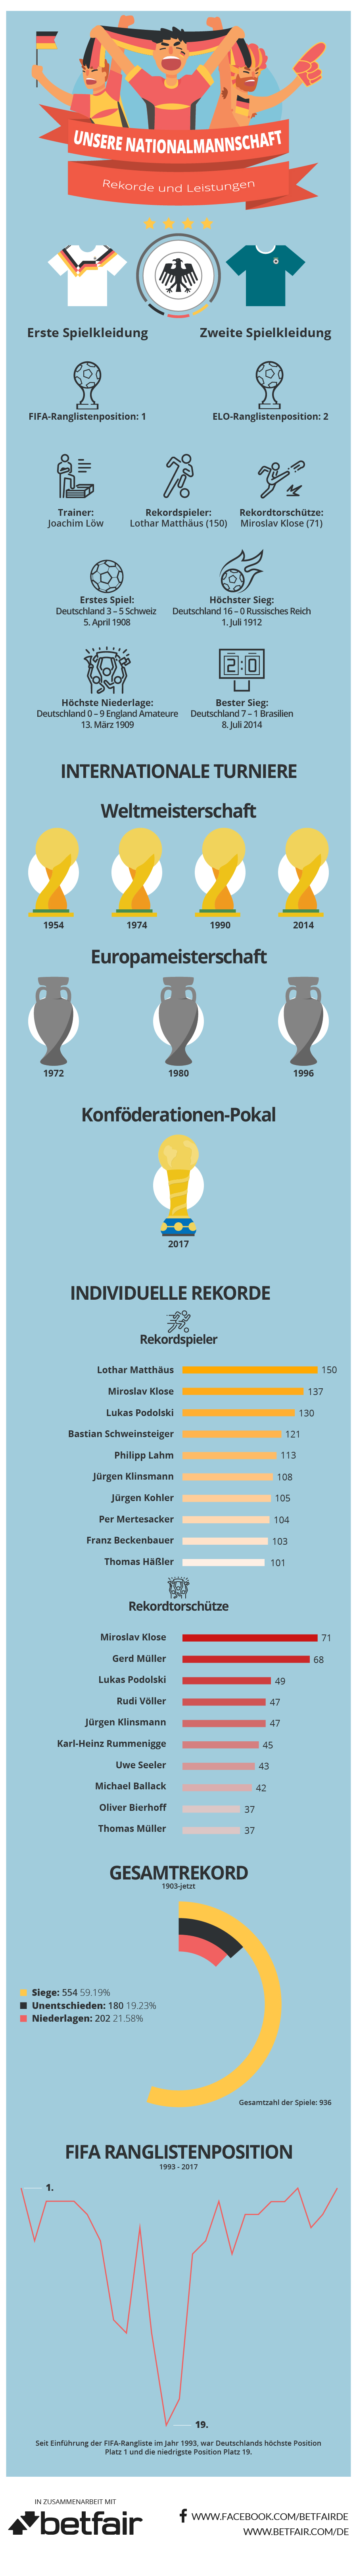 Nationalmannschaft Infografik